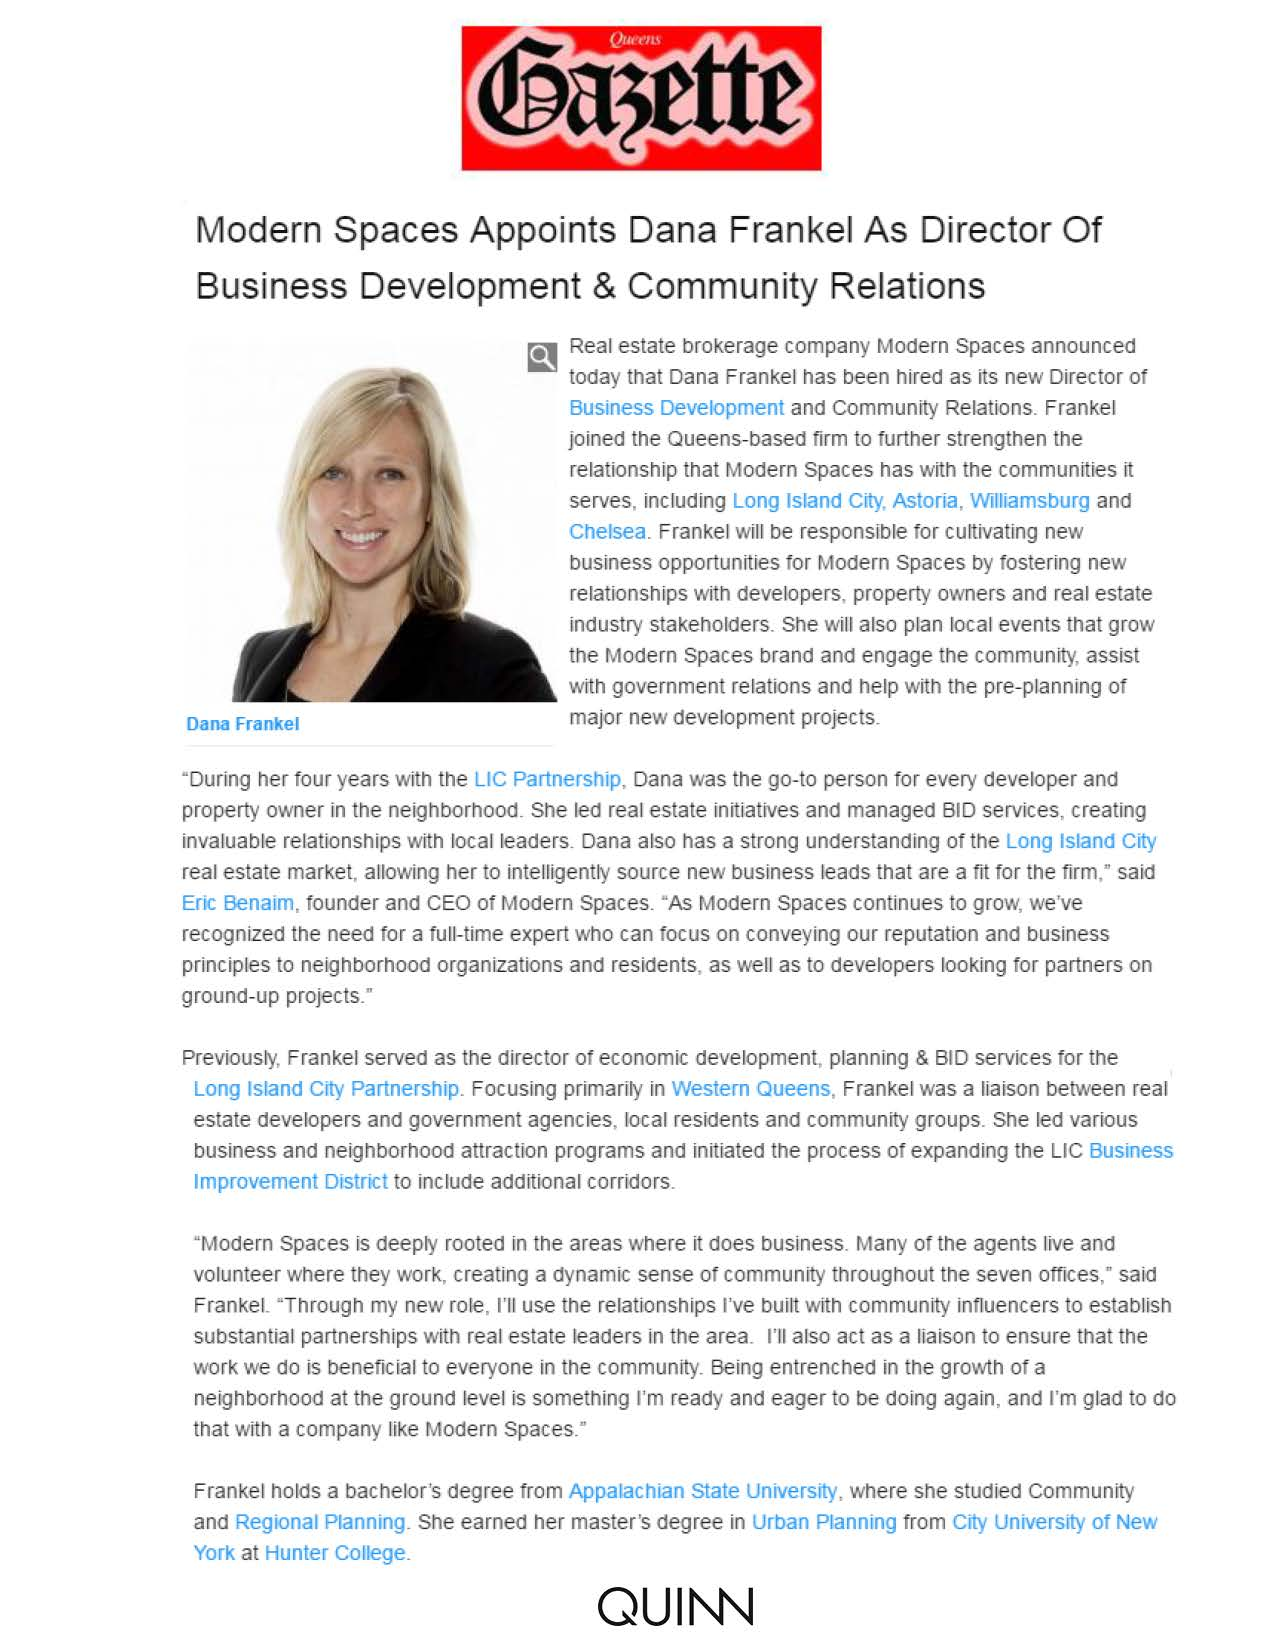 Queens Gazette - Modern Spaces Appoints Dana Frankel As Director Of Business Development & Community Relations - 04.13.16